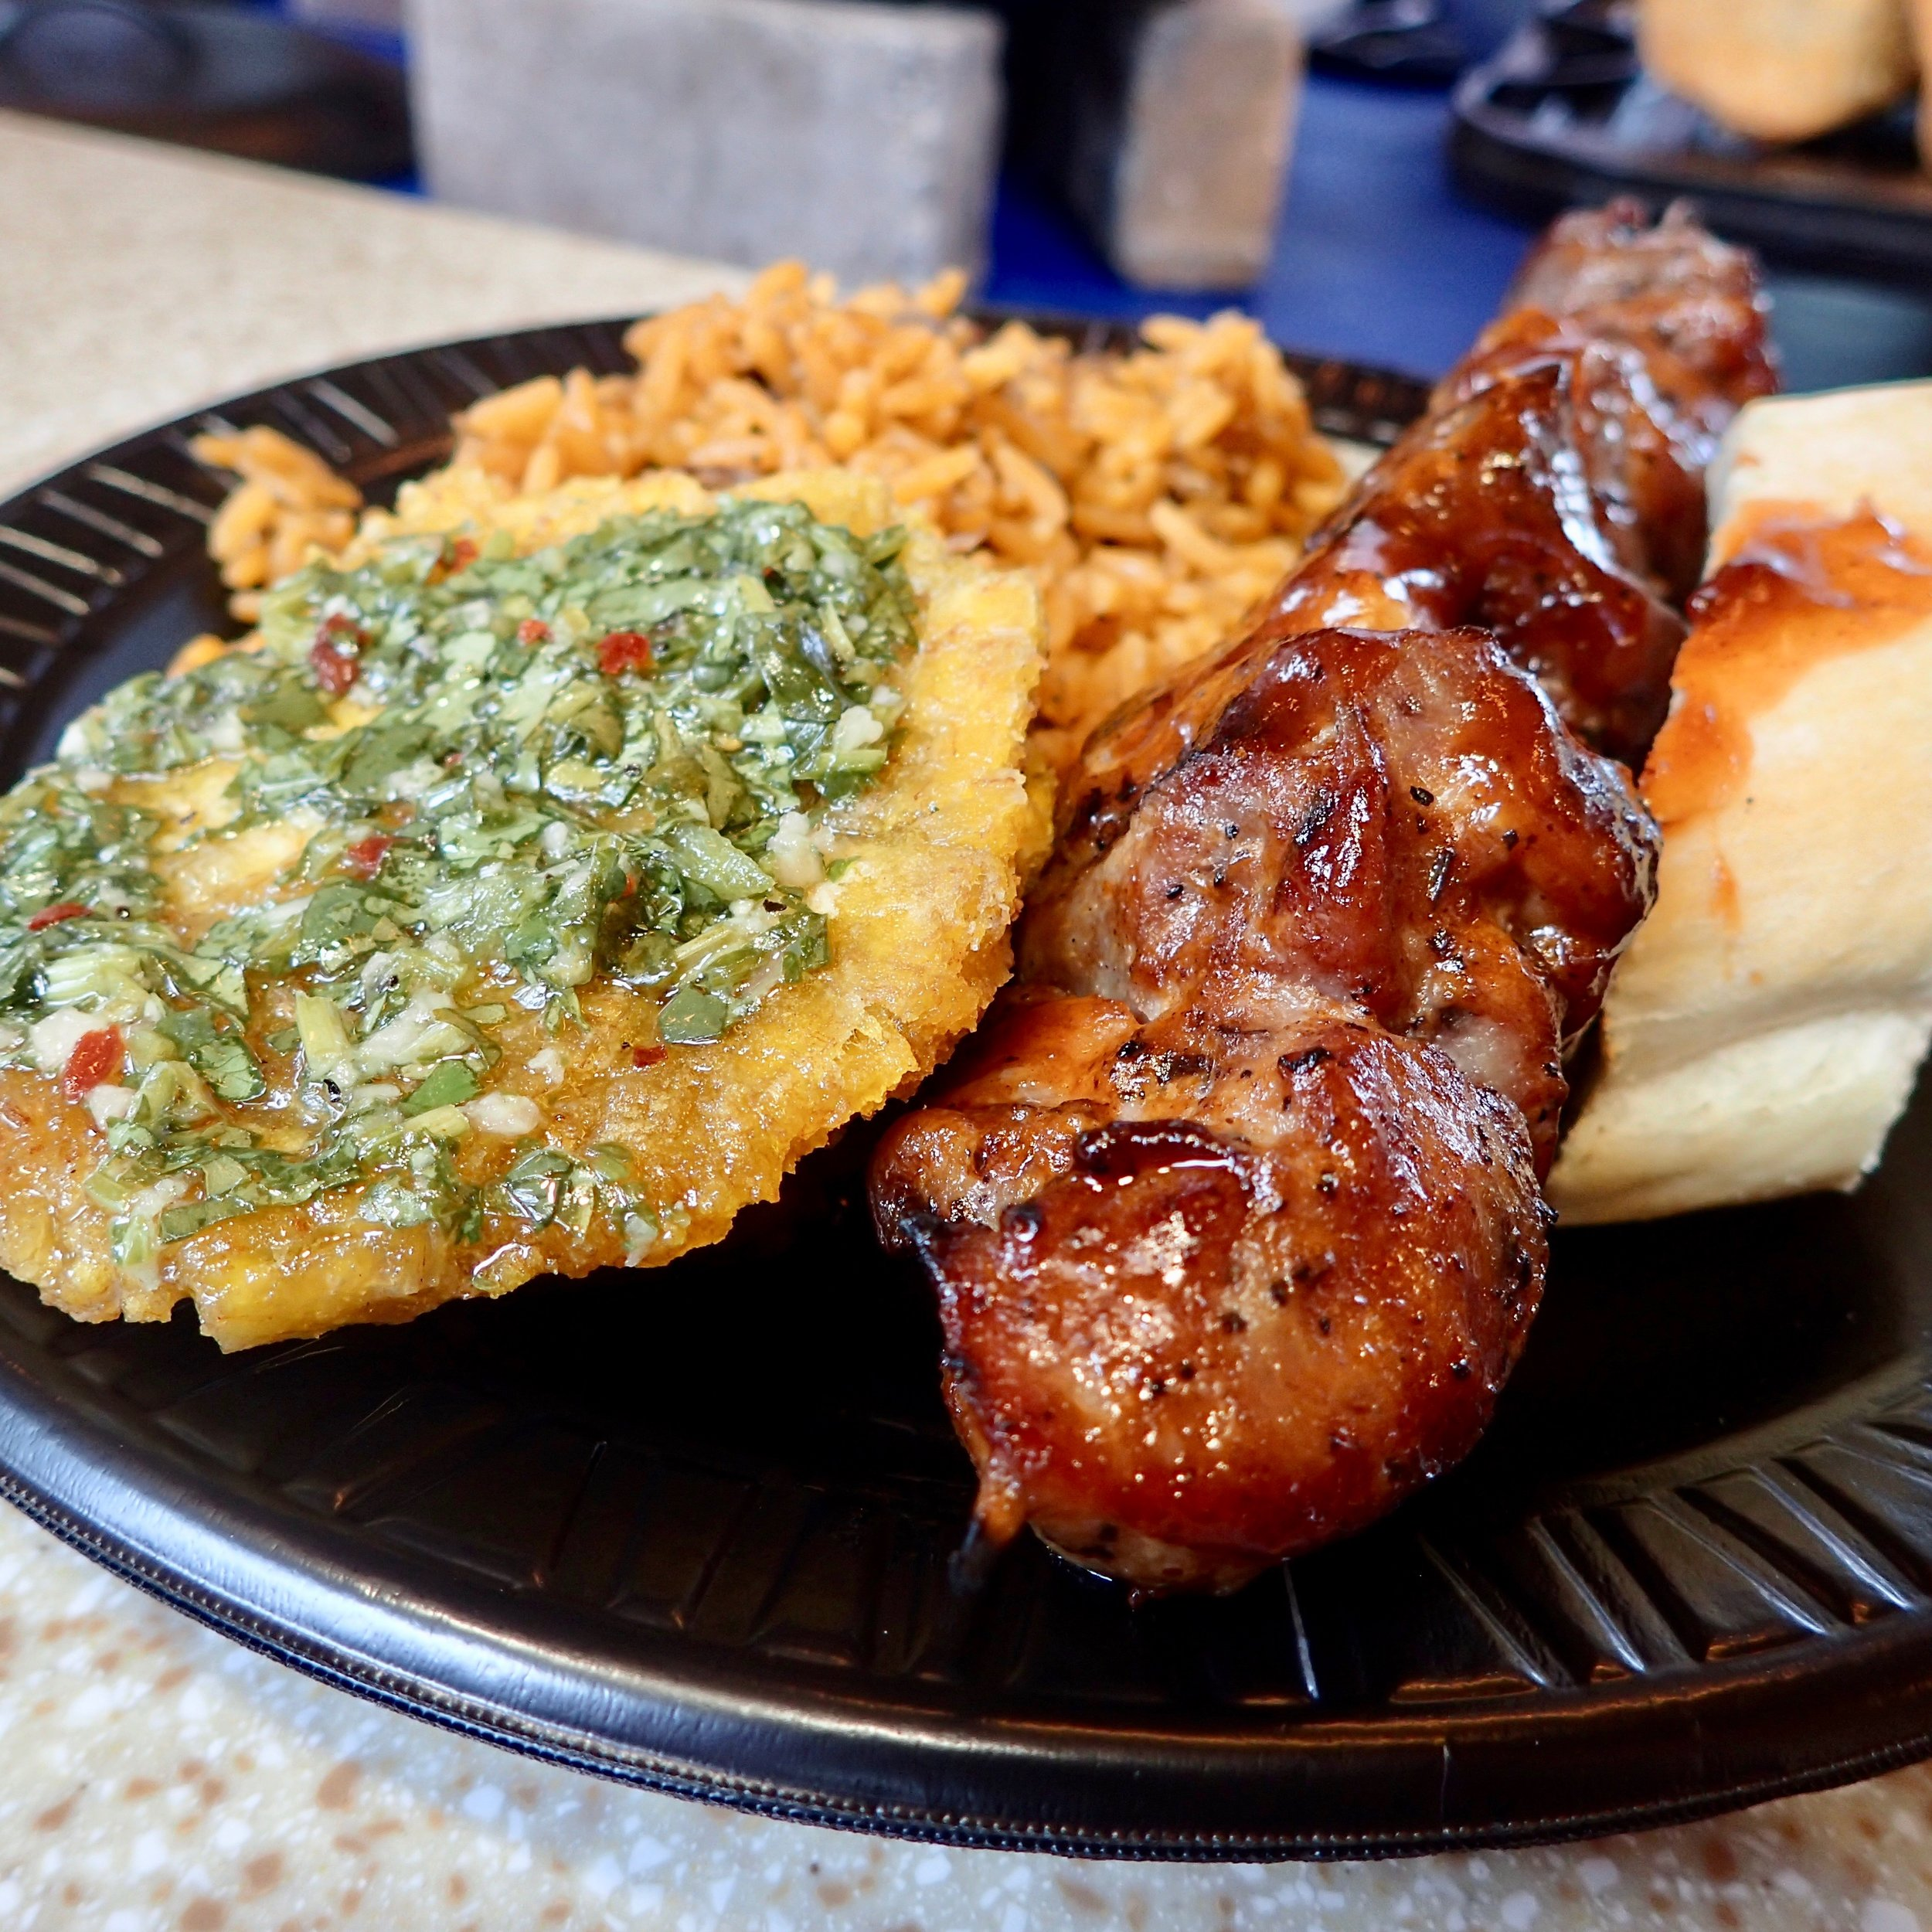 Gorgeous, right? This is the pincho de pollo (or may it's the cerdo?) con tostones -- in other words, a chicken or pork kebab platter served with fried green plantain, rice and bread.